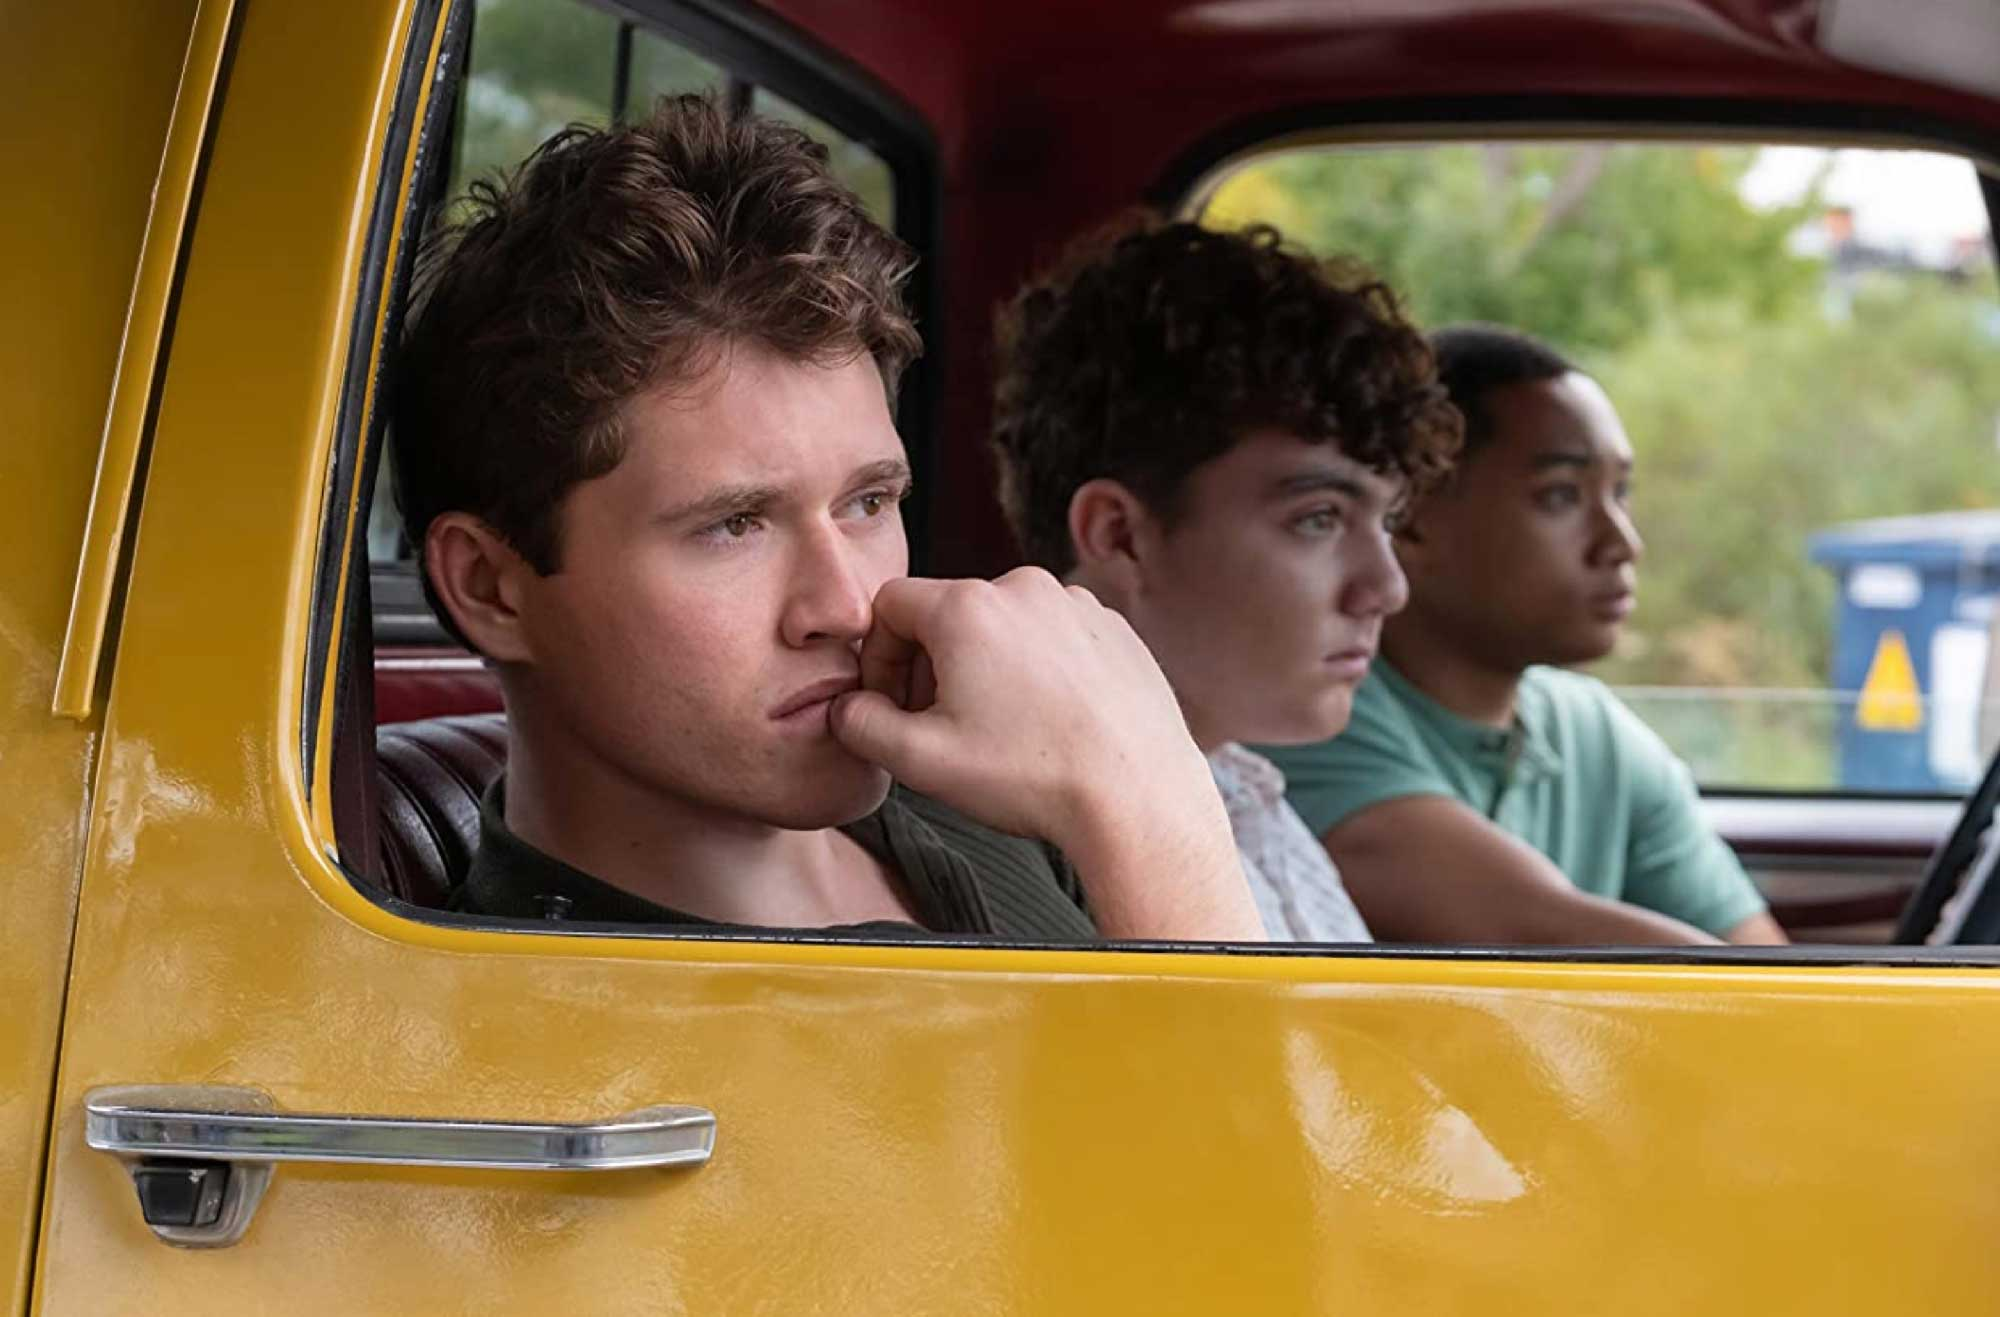 3 boys in a vintage yellow car